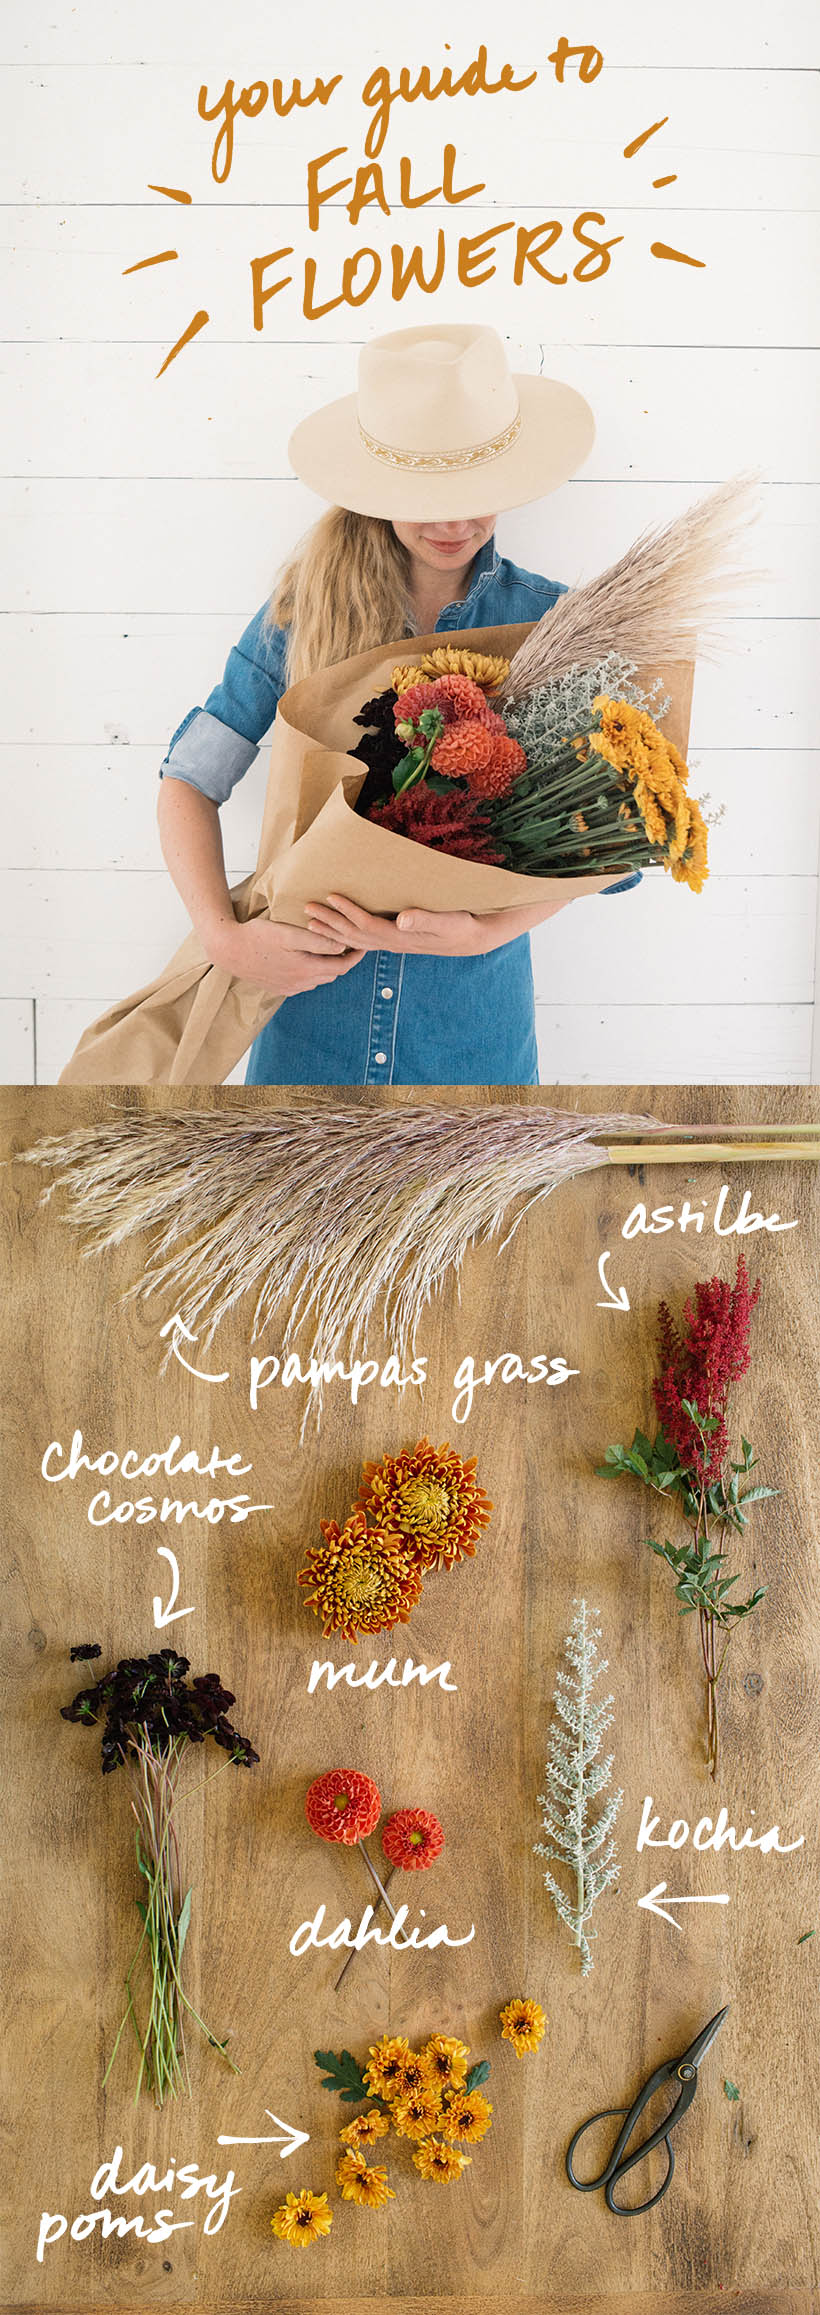 Perfect for fall wedding flowers